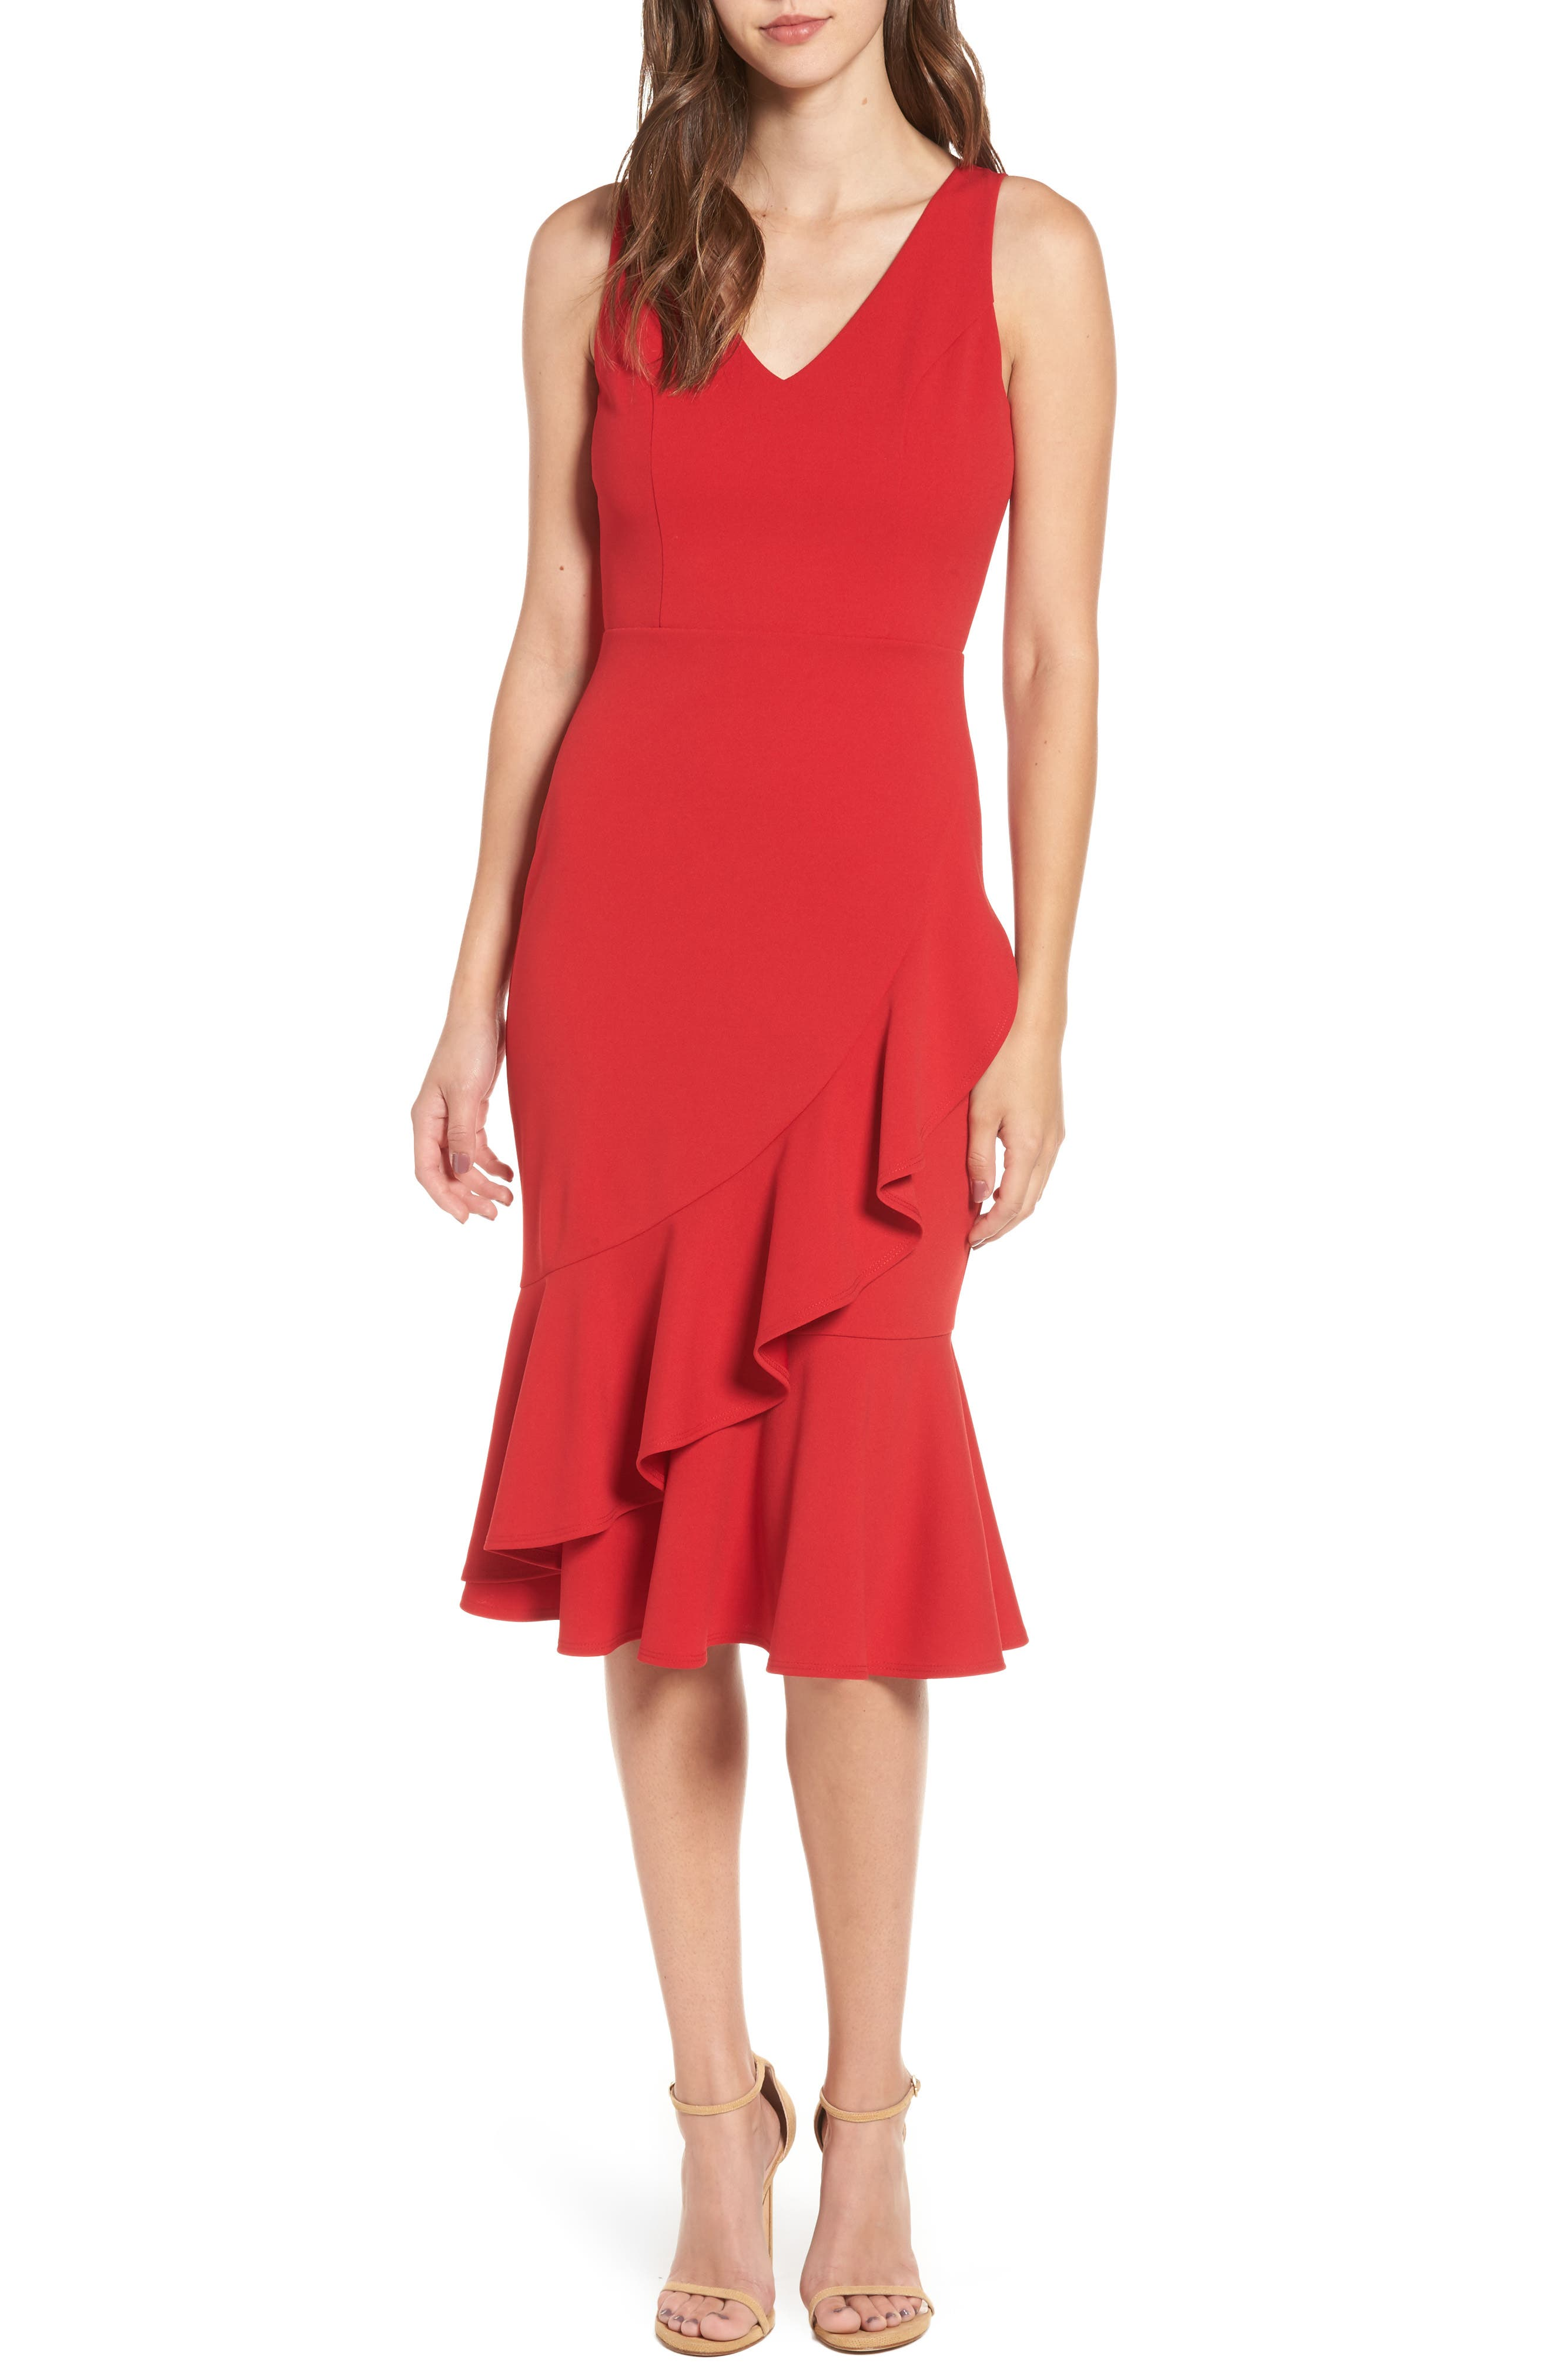 Alternate Image 1 Selected - Soprano Ruffle Hem Dress